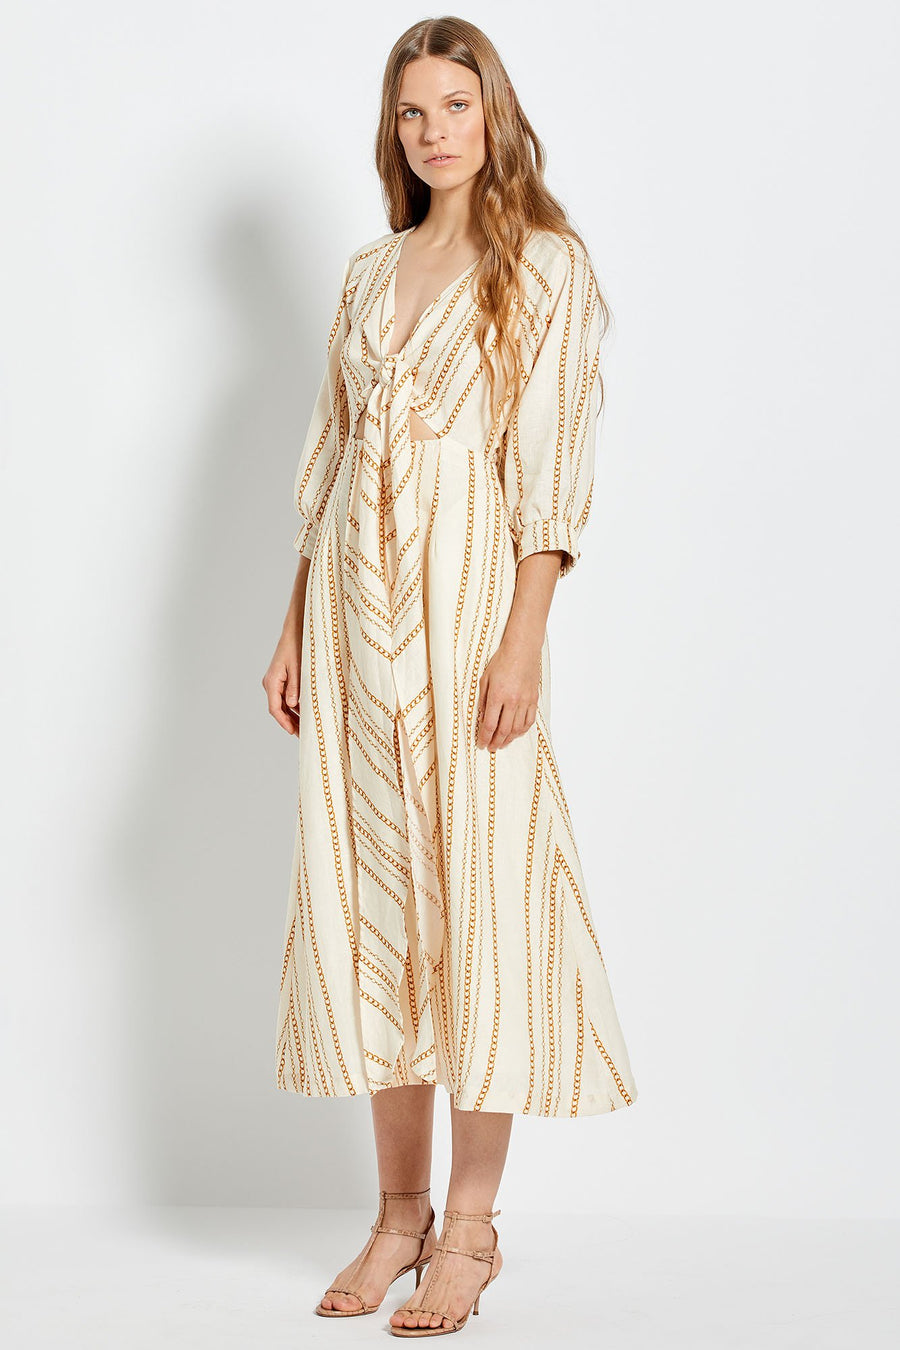 Asilah Dress - Vintage Chain - Ivory